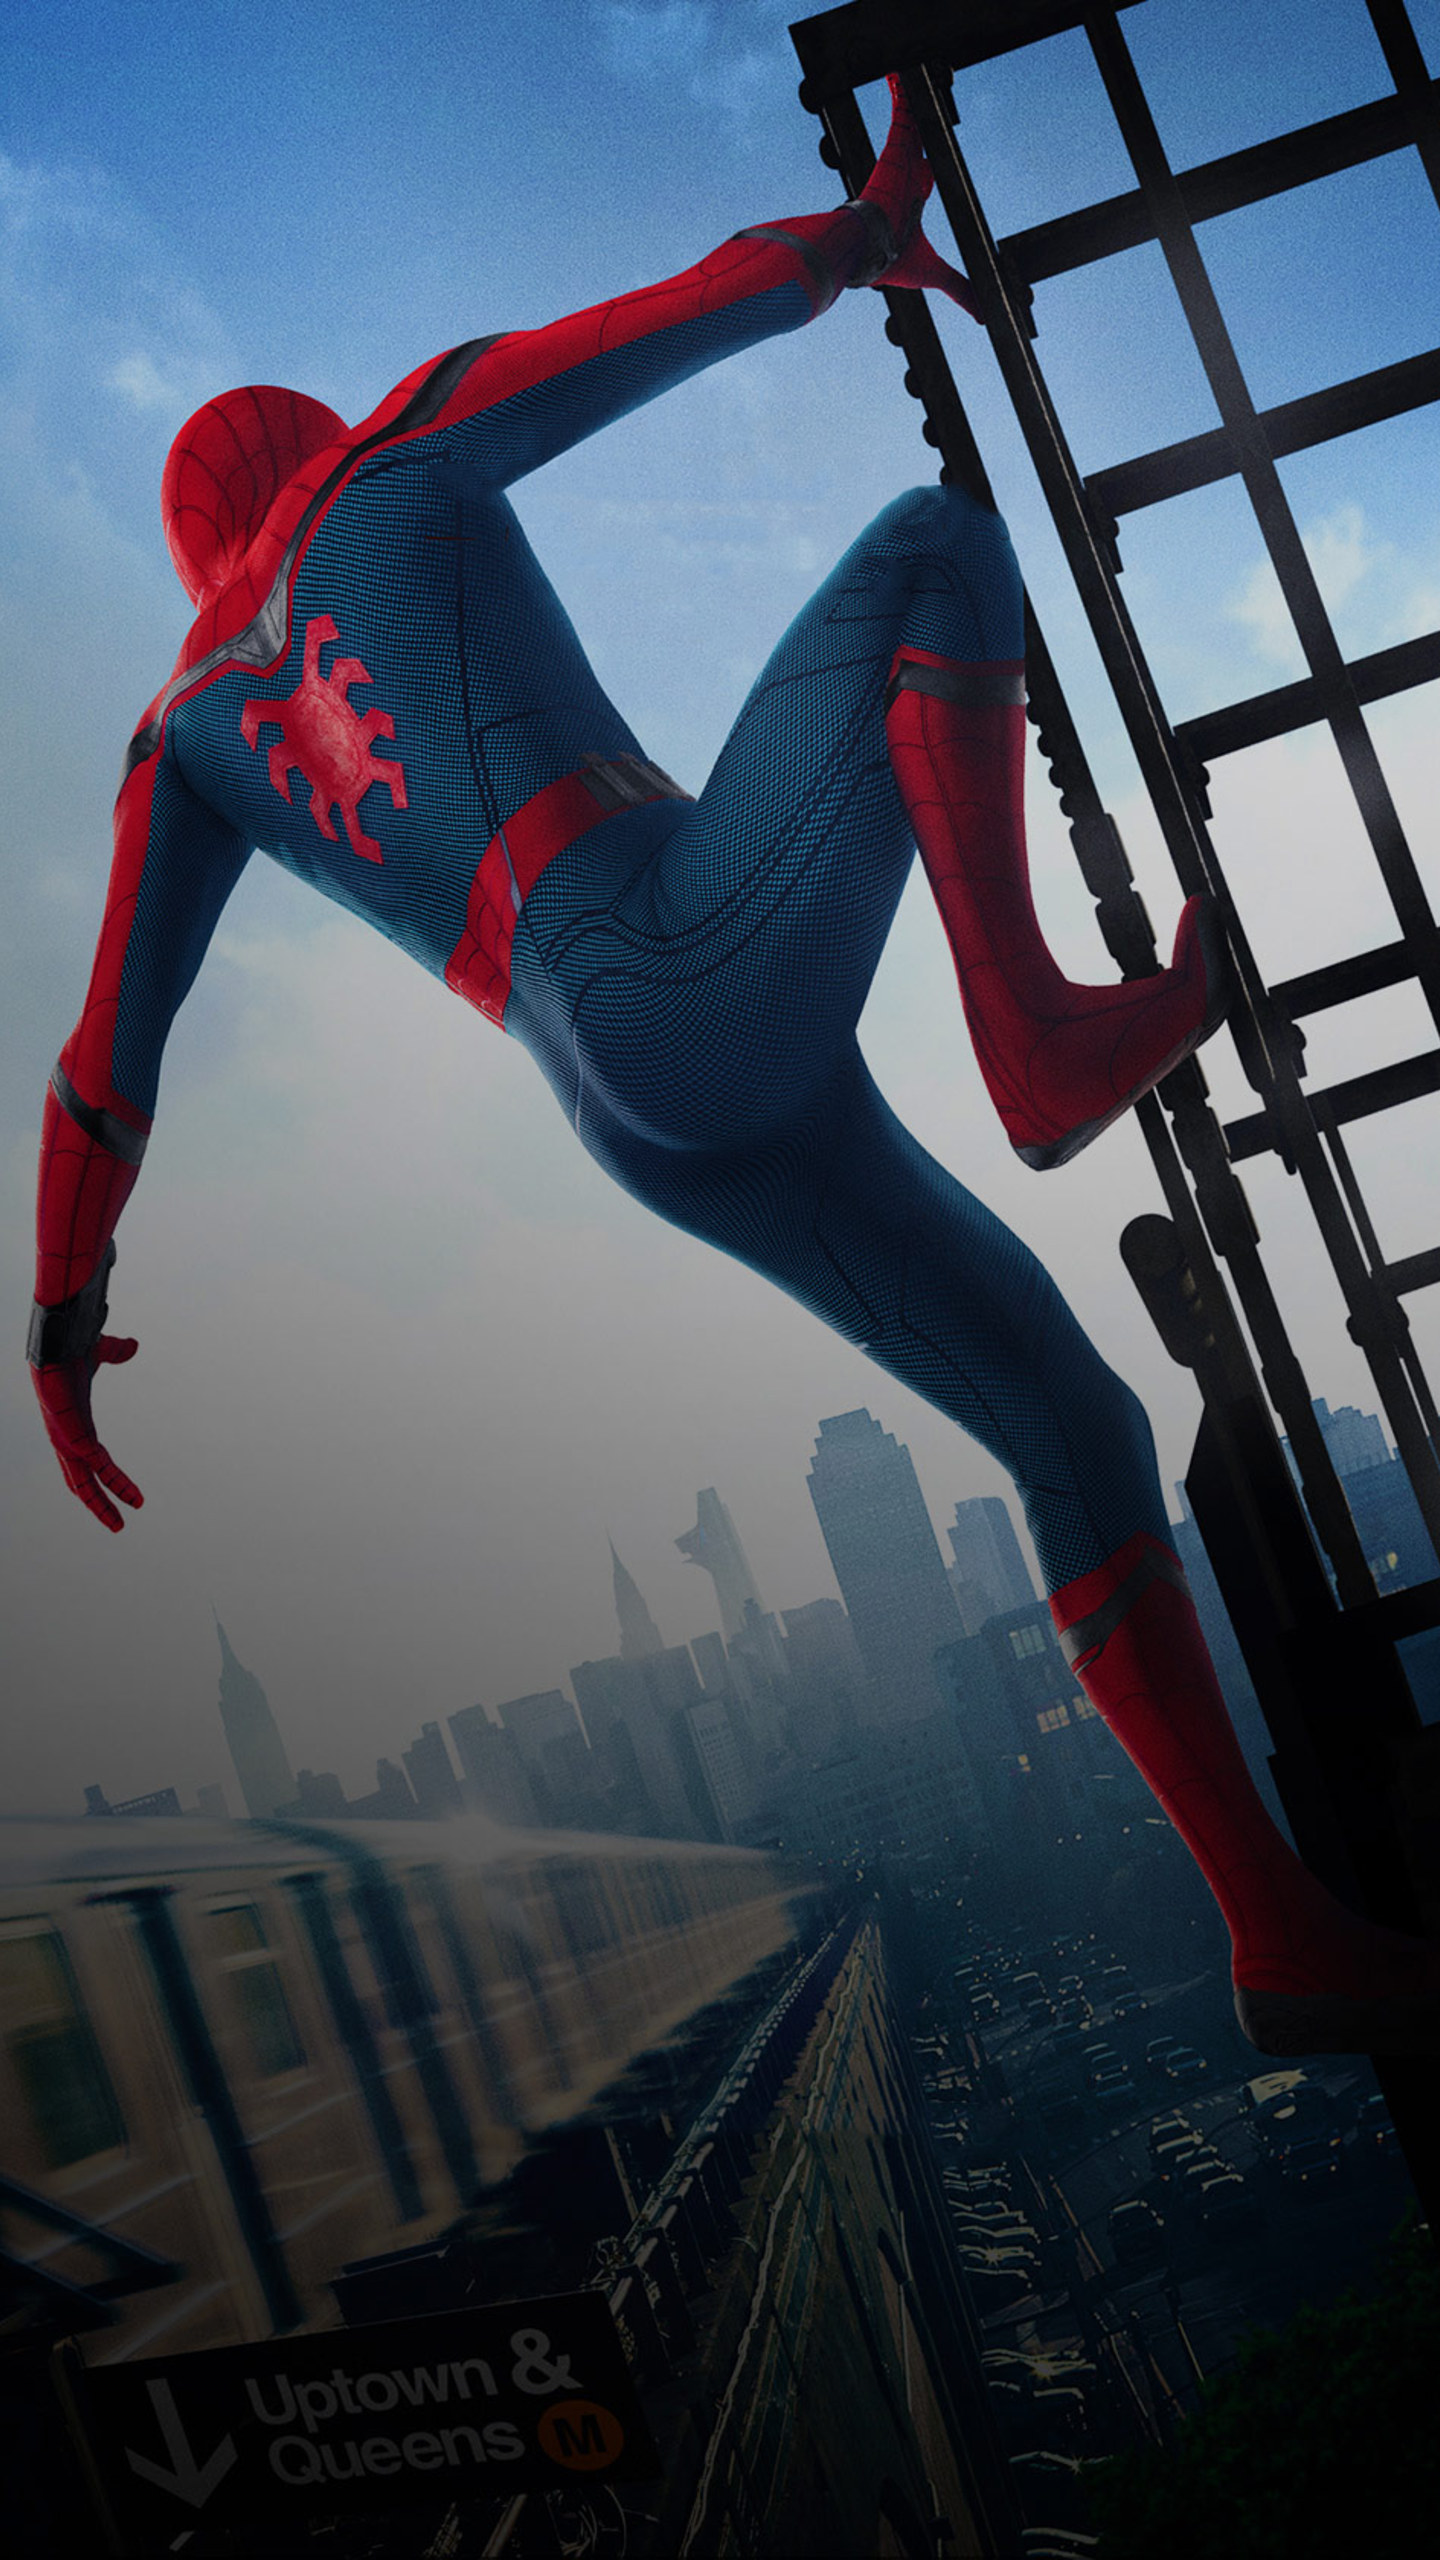 The Amazing Spider Man Wallpaper For Iphone Spiderman Homecoming Fondos De Pantalla Para Android E Iphone